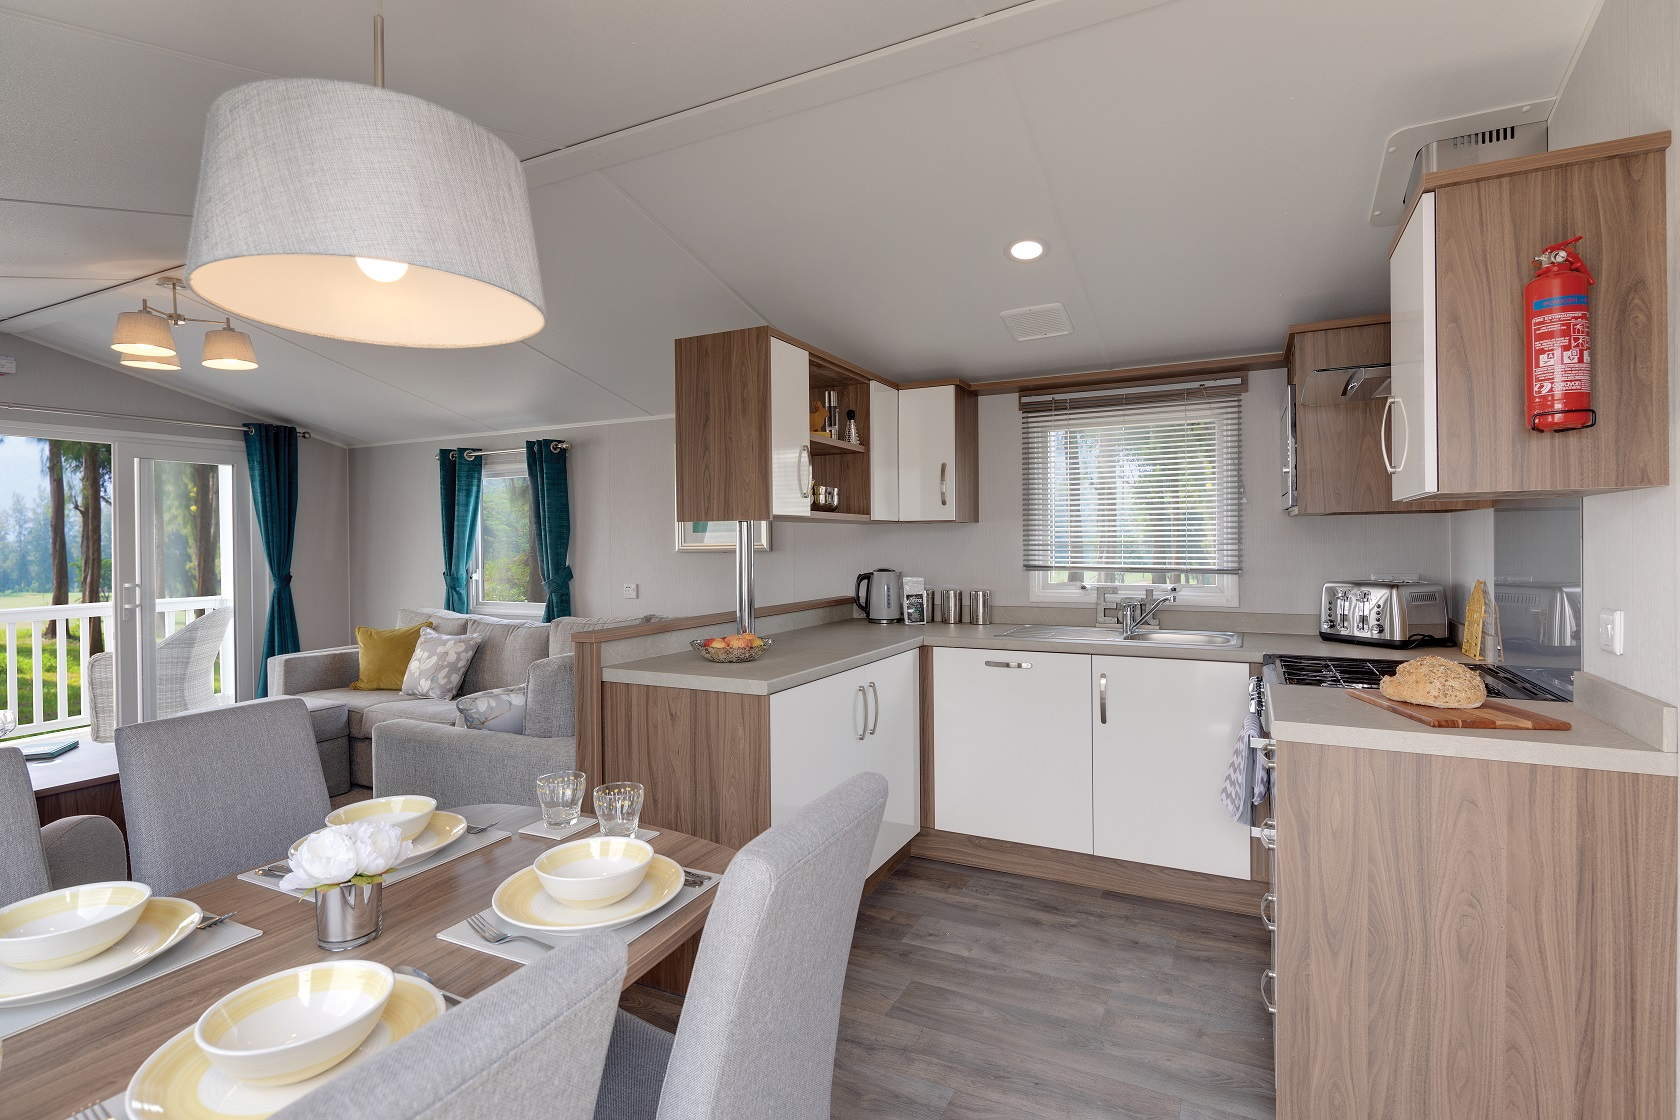 Willerby Avonmore: New Static Caravans and Holiday Homes for Sale, Adderstone, Belford Large Image 2